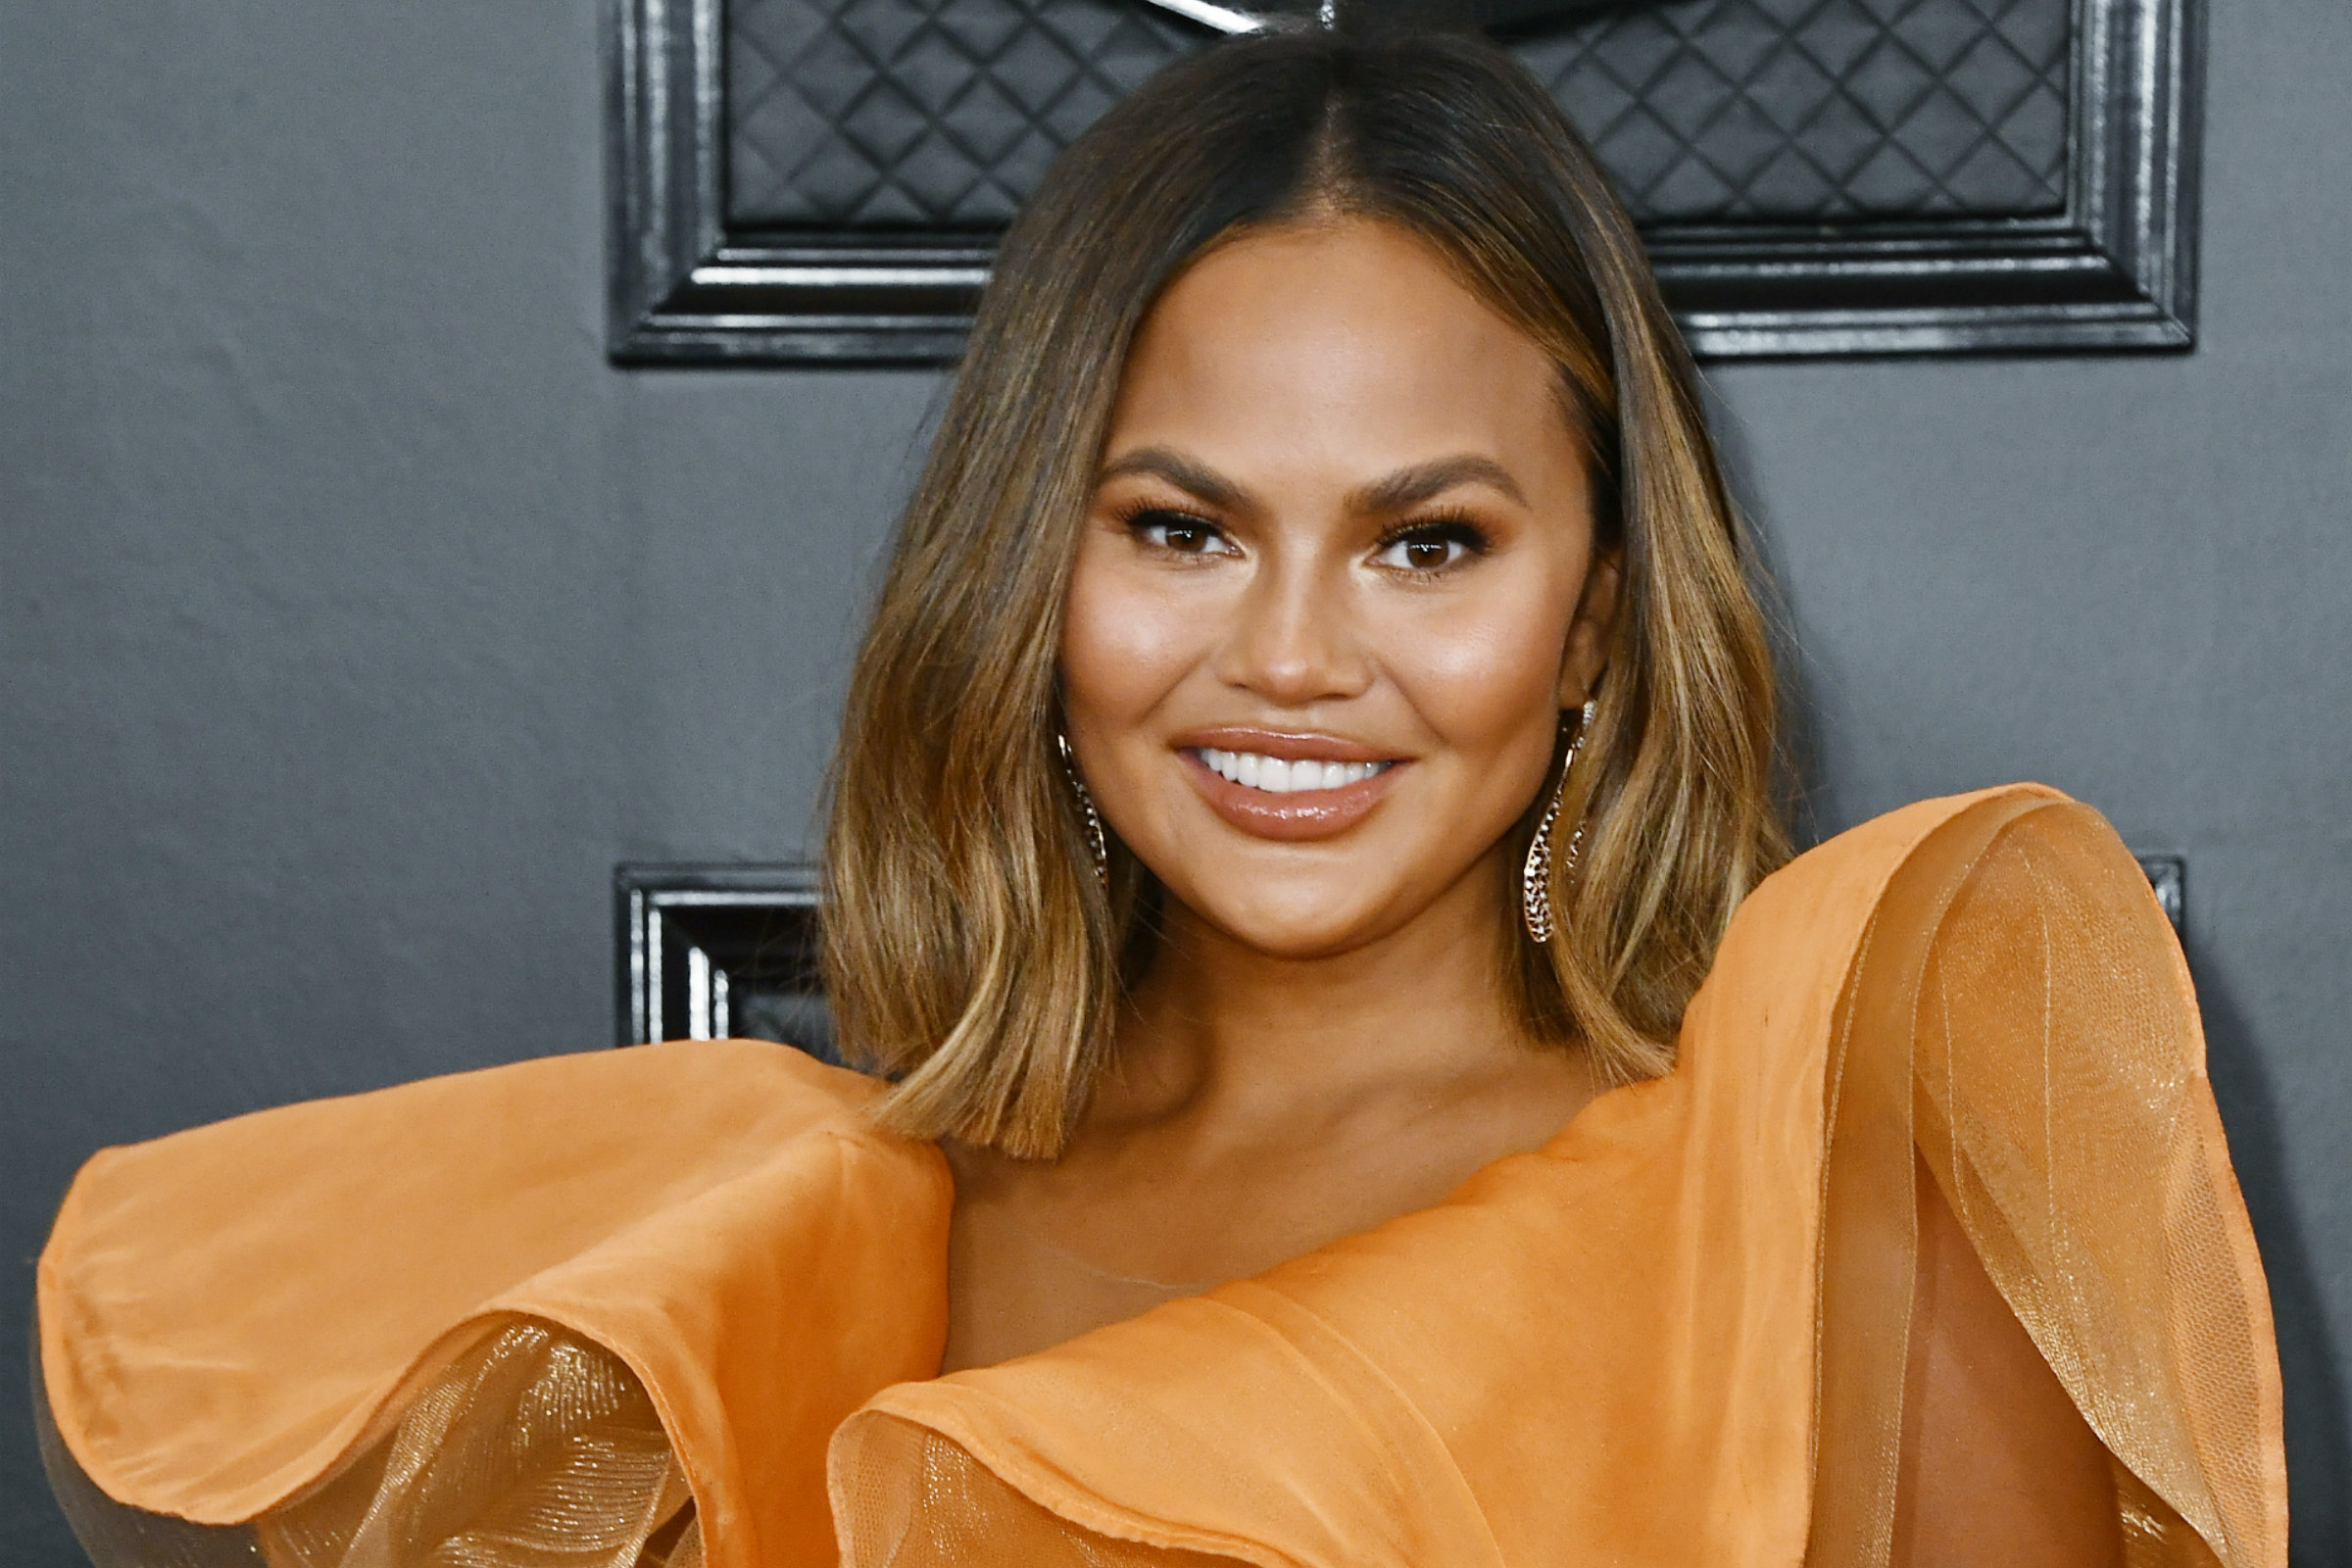 Chrissy Teigen, an Asian woman with blond-brown hair, smiles on the red carpet in a bright orange dress